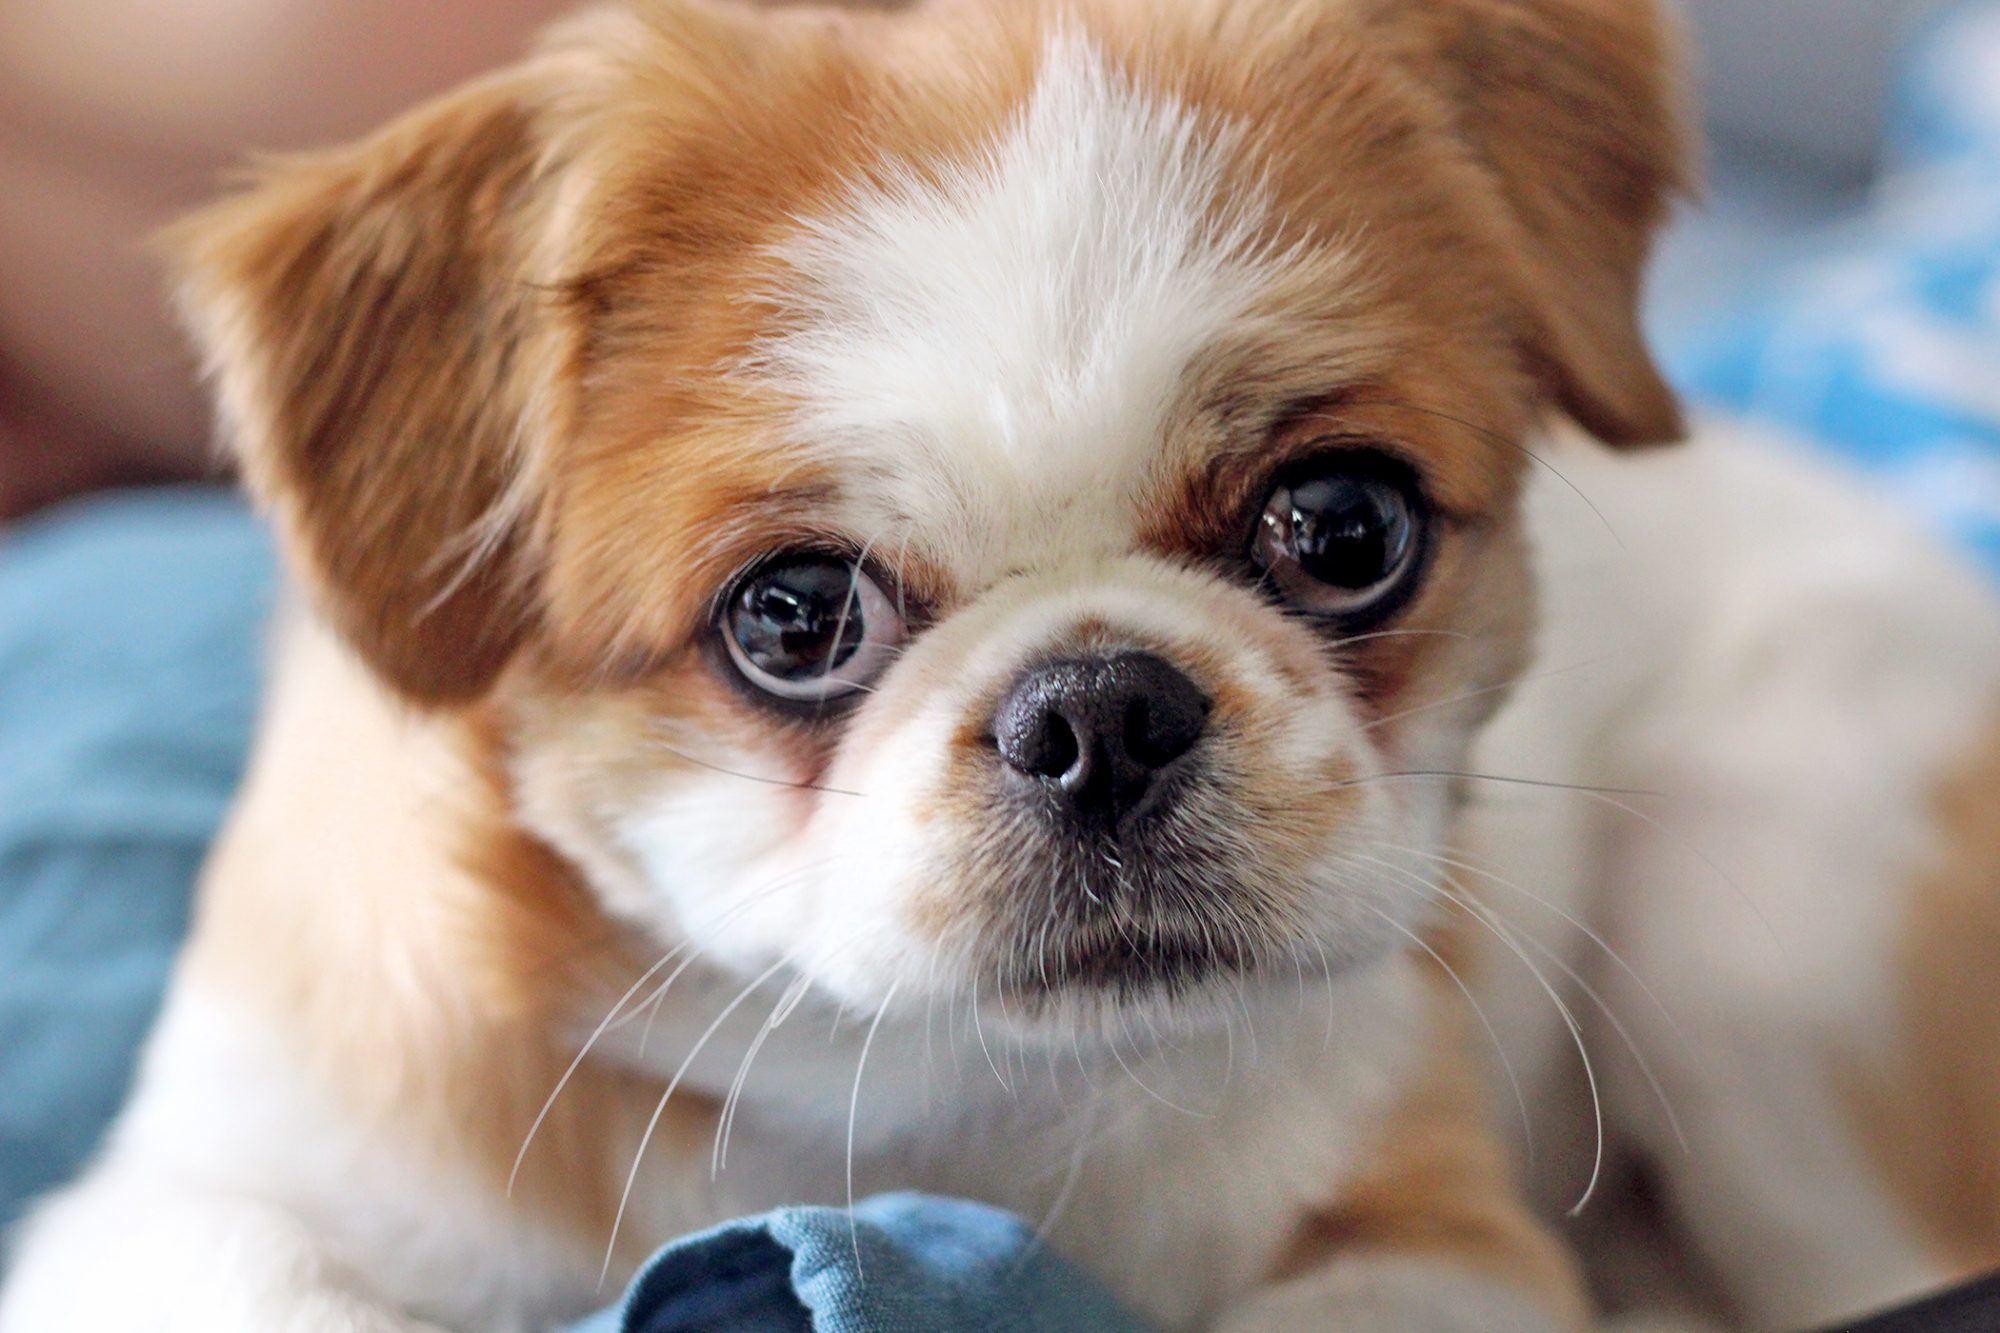 brown and white Pekingese puppy lying on a blue towel looking at the camera